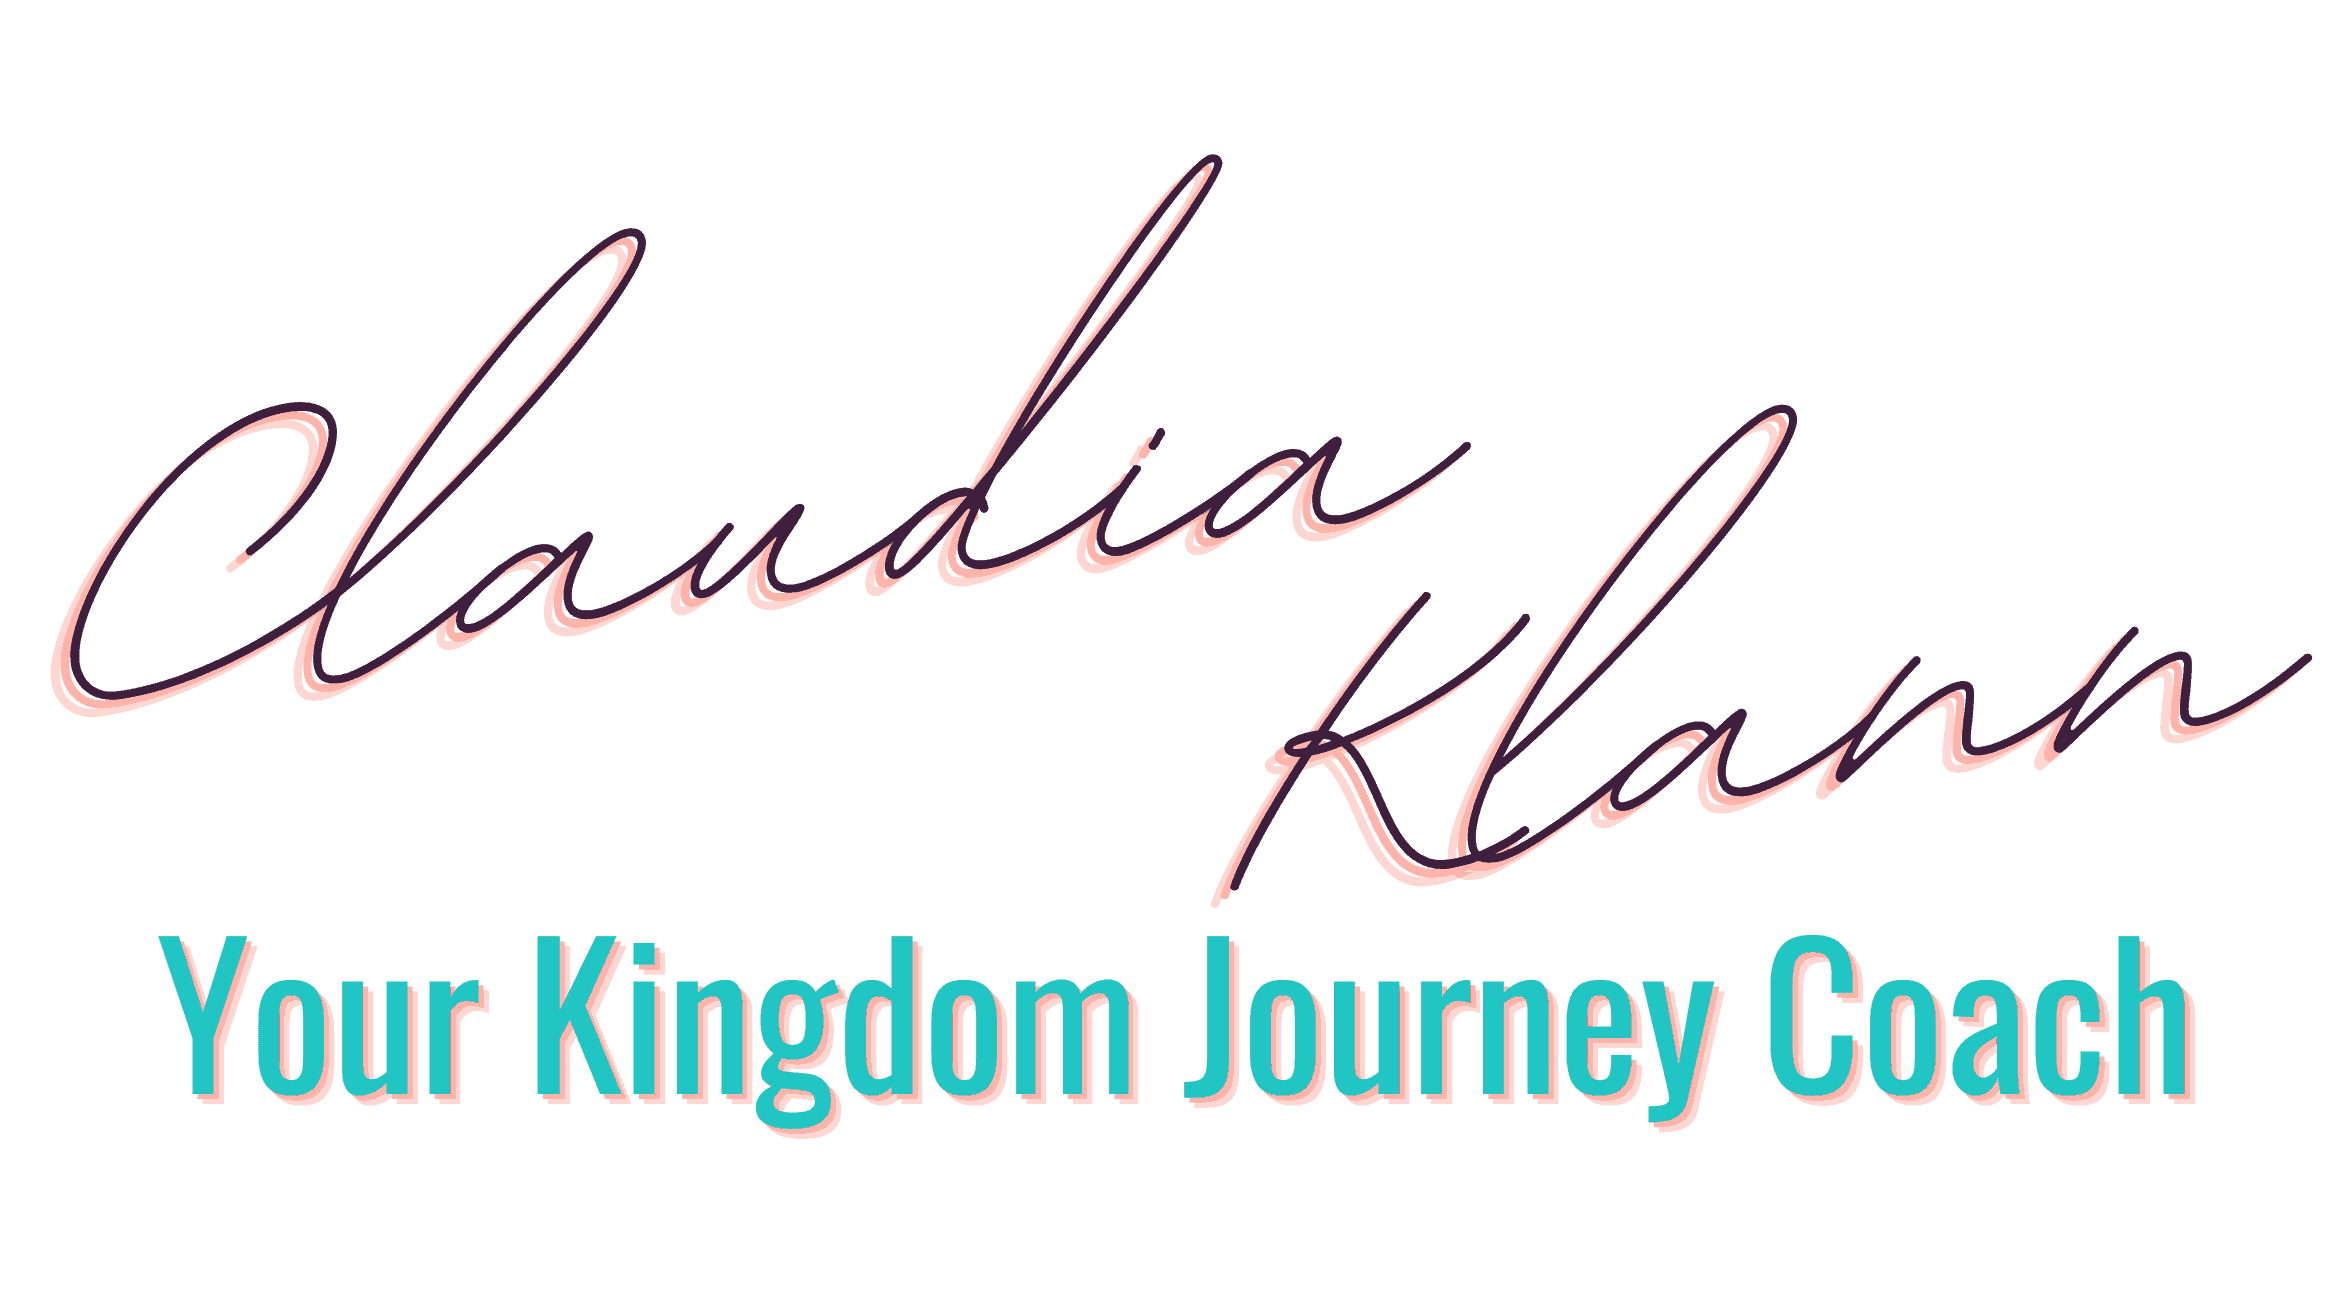 Encouragement for Your Kingdom Journey!